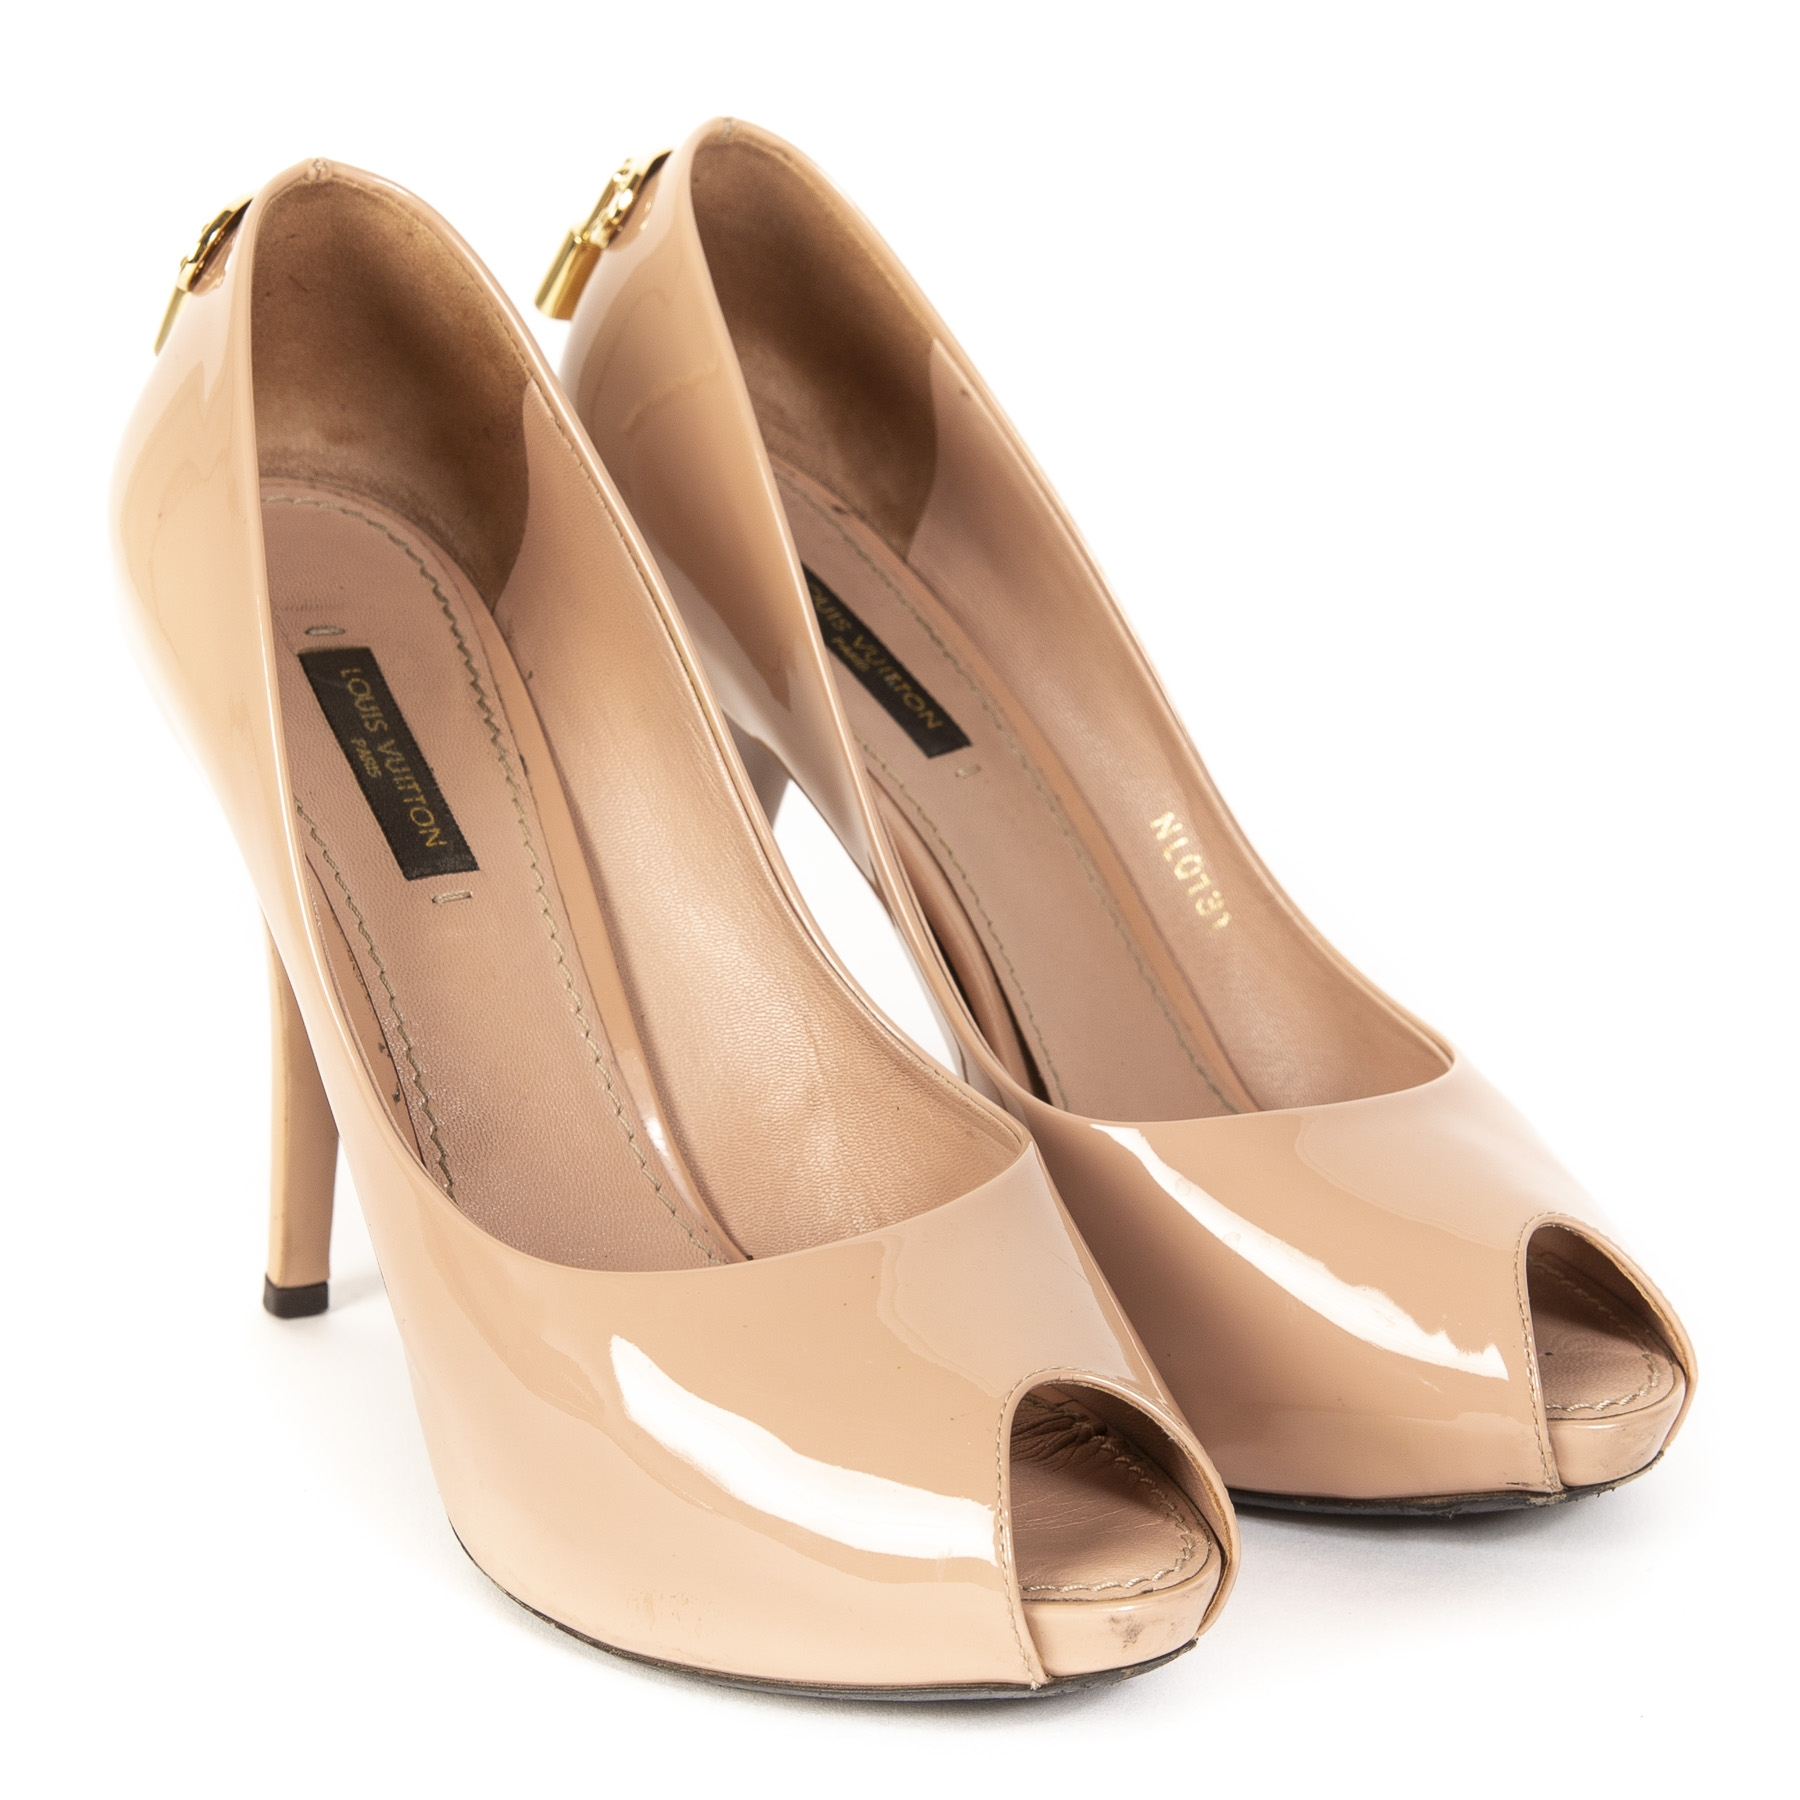 Louis Vuitton 'Oh Really' Blush Pink Patent Peep-toe Pumps